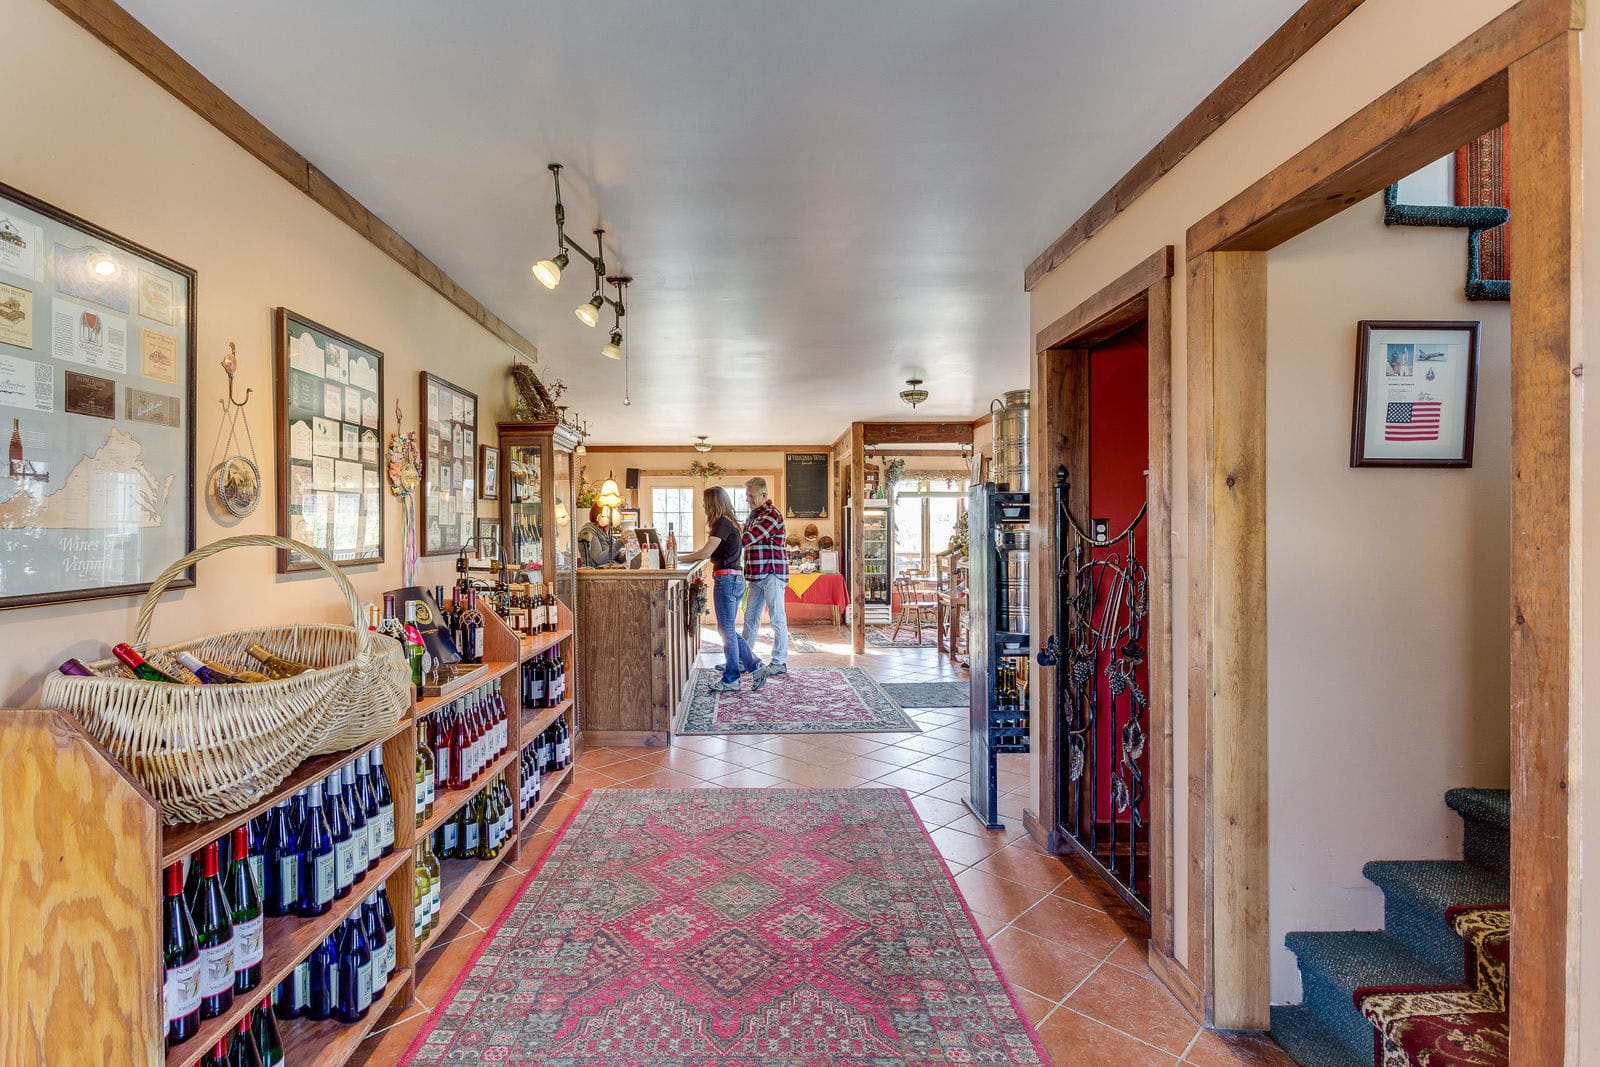 North Mountain Winery and Vineyard,a turnkey boutique vineyard and winery on 47 acres with 17 acres of producing vines and 10 varietals, is on the market for $2 million. (Courtesy Will Hinostroza, BTW Images/Keller Williams)